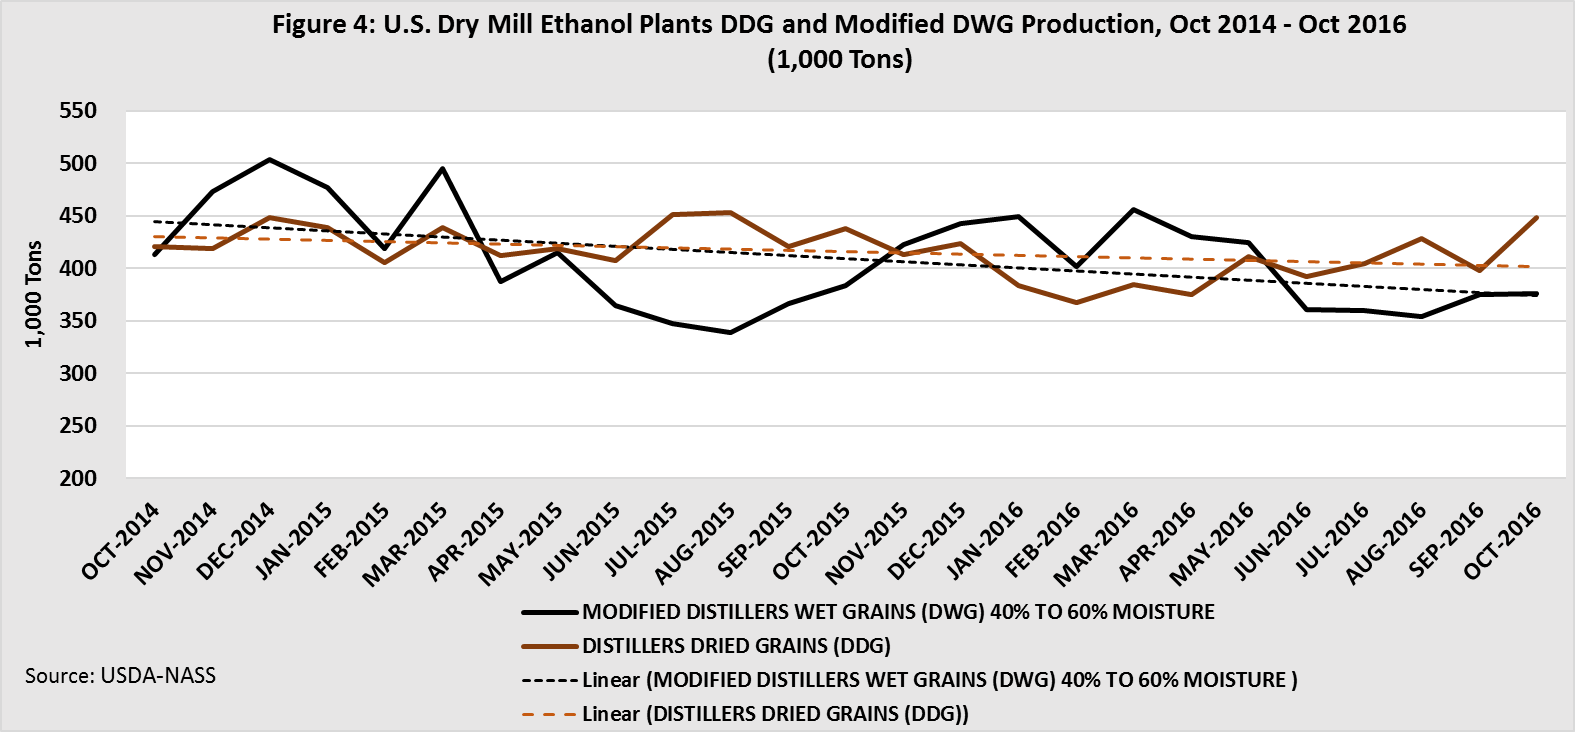 U.S. Dry Mill Ethanol Plants DDG and Modified DWG Production